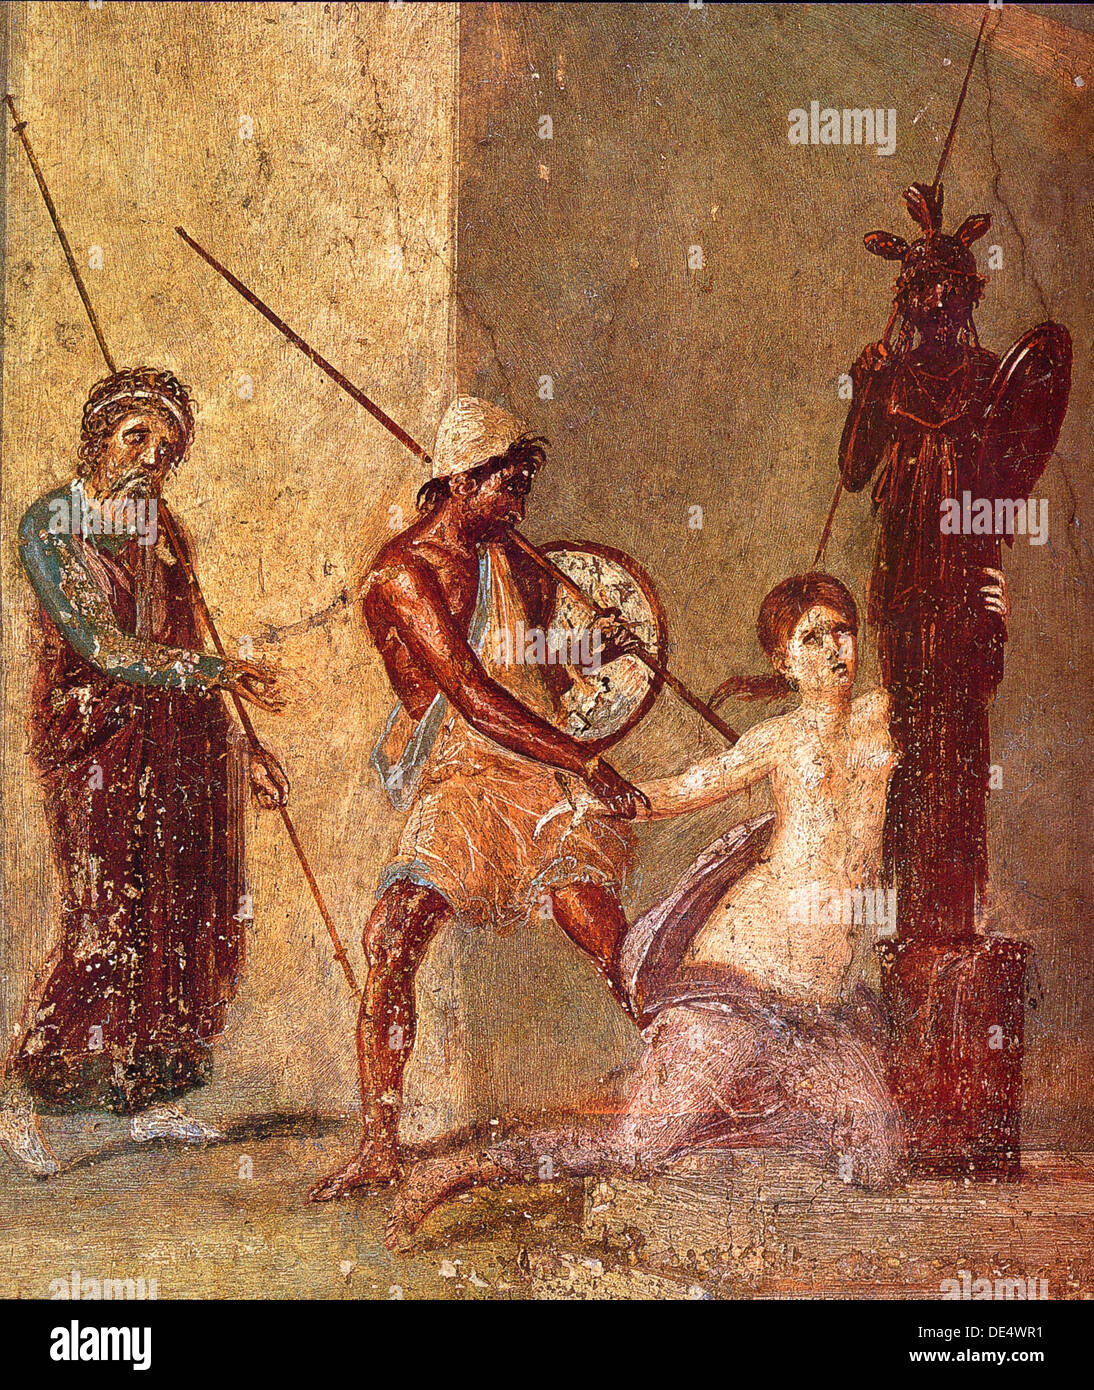 Ajax the Lesser drags Cassandra away from the Xoanon, 1st H. 1st cen. AD. Artist: Roman-Pompeian wall painting - Stock Image